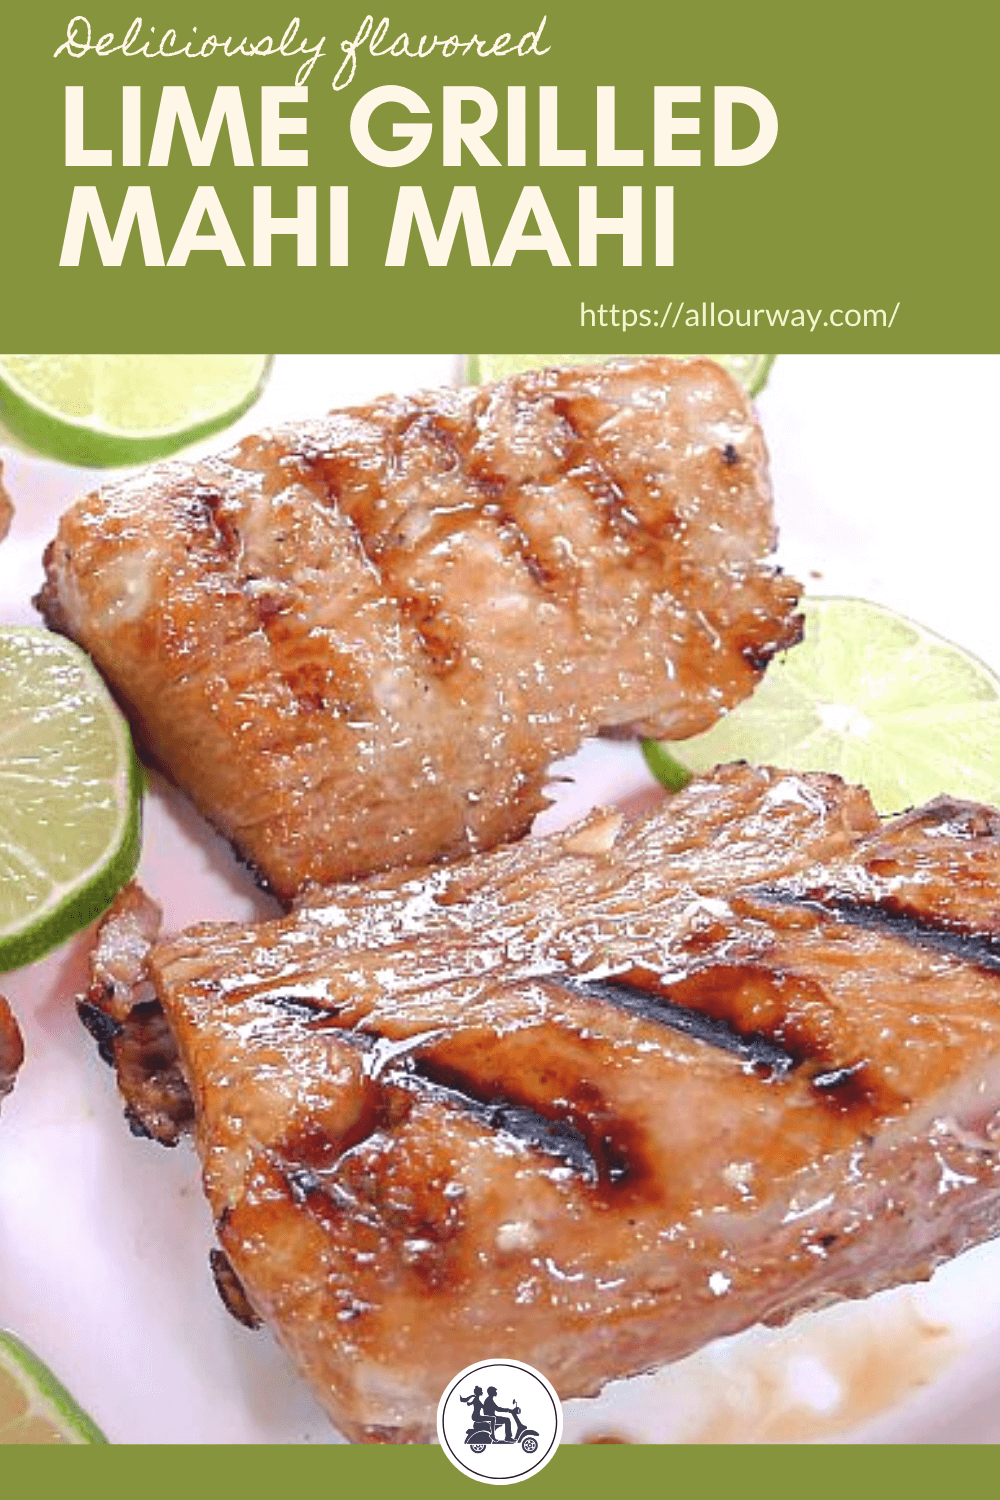 Grilled Lime Marinated Mahi Mahi is mouthwateringly delicious. The fish fillets are first marinated in a tasty lime, soy, ginger marinade and then cook on a very hot grill. The sauce gives a tasty flavor to the fish and keeps it moist. You can also use the marinade on other firm flesh fish.